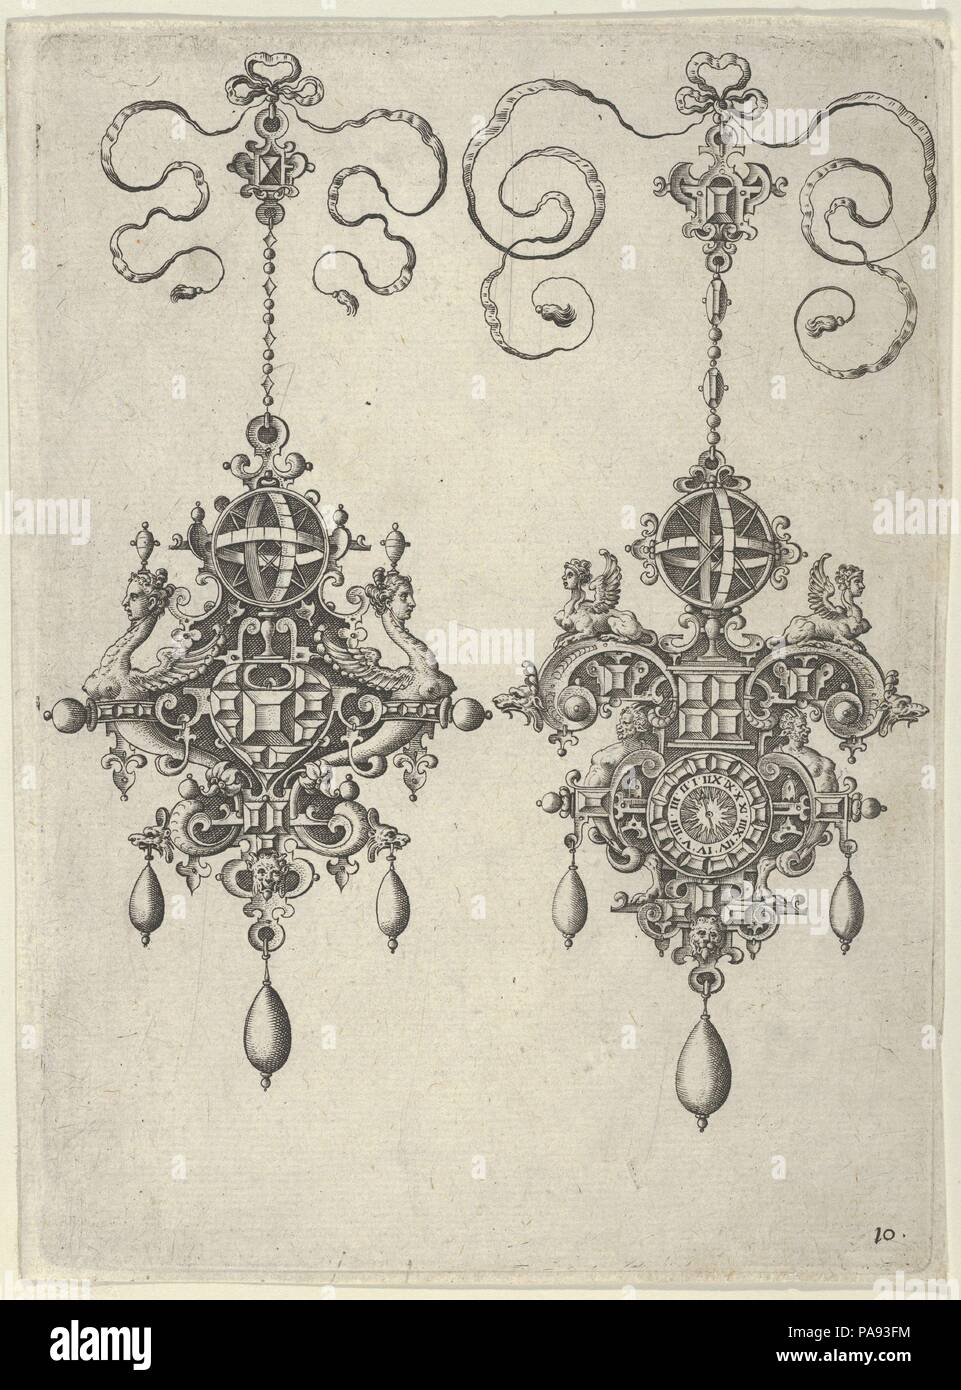 Two Pendant Designs with Sun-Dials on Top. Artist: Jan Collaert I (Netherlandish, Antwerp ca. 1530-1581 Antwerp). Dimensions: Sheet: 6 15/16 × 5 3/16 in. (17.7 × 13.2 cm). Series/Portfolio: Designs for Pendants I. Date: after 1581.  Vertical panel with two pendant designs with strapwork and grotesques. Both ornaments are suspended from small jewelled motifs tied with ribbon above and are topped by circular sun-dials. The design at left shows two outward-facing grotesques with female heads on serpentine necks. The design at right has griffins flanking the sun-dial and a clock at bottom center.  - Stock Image